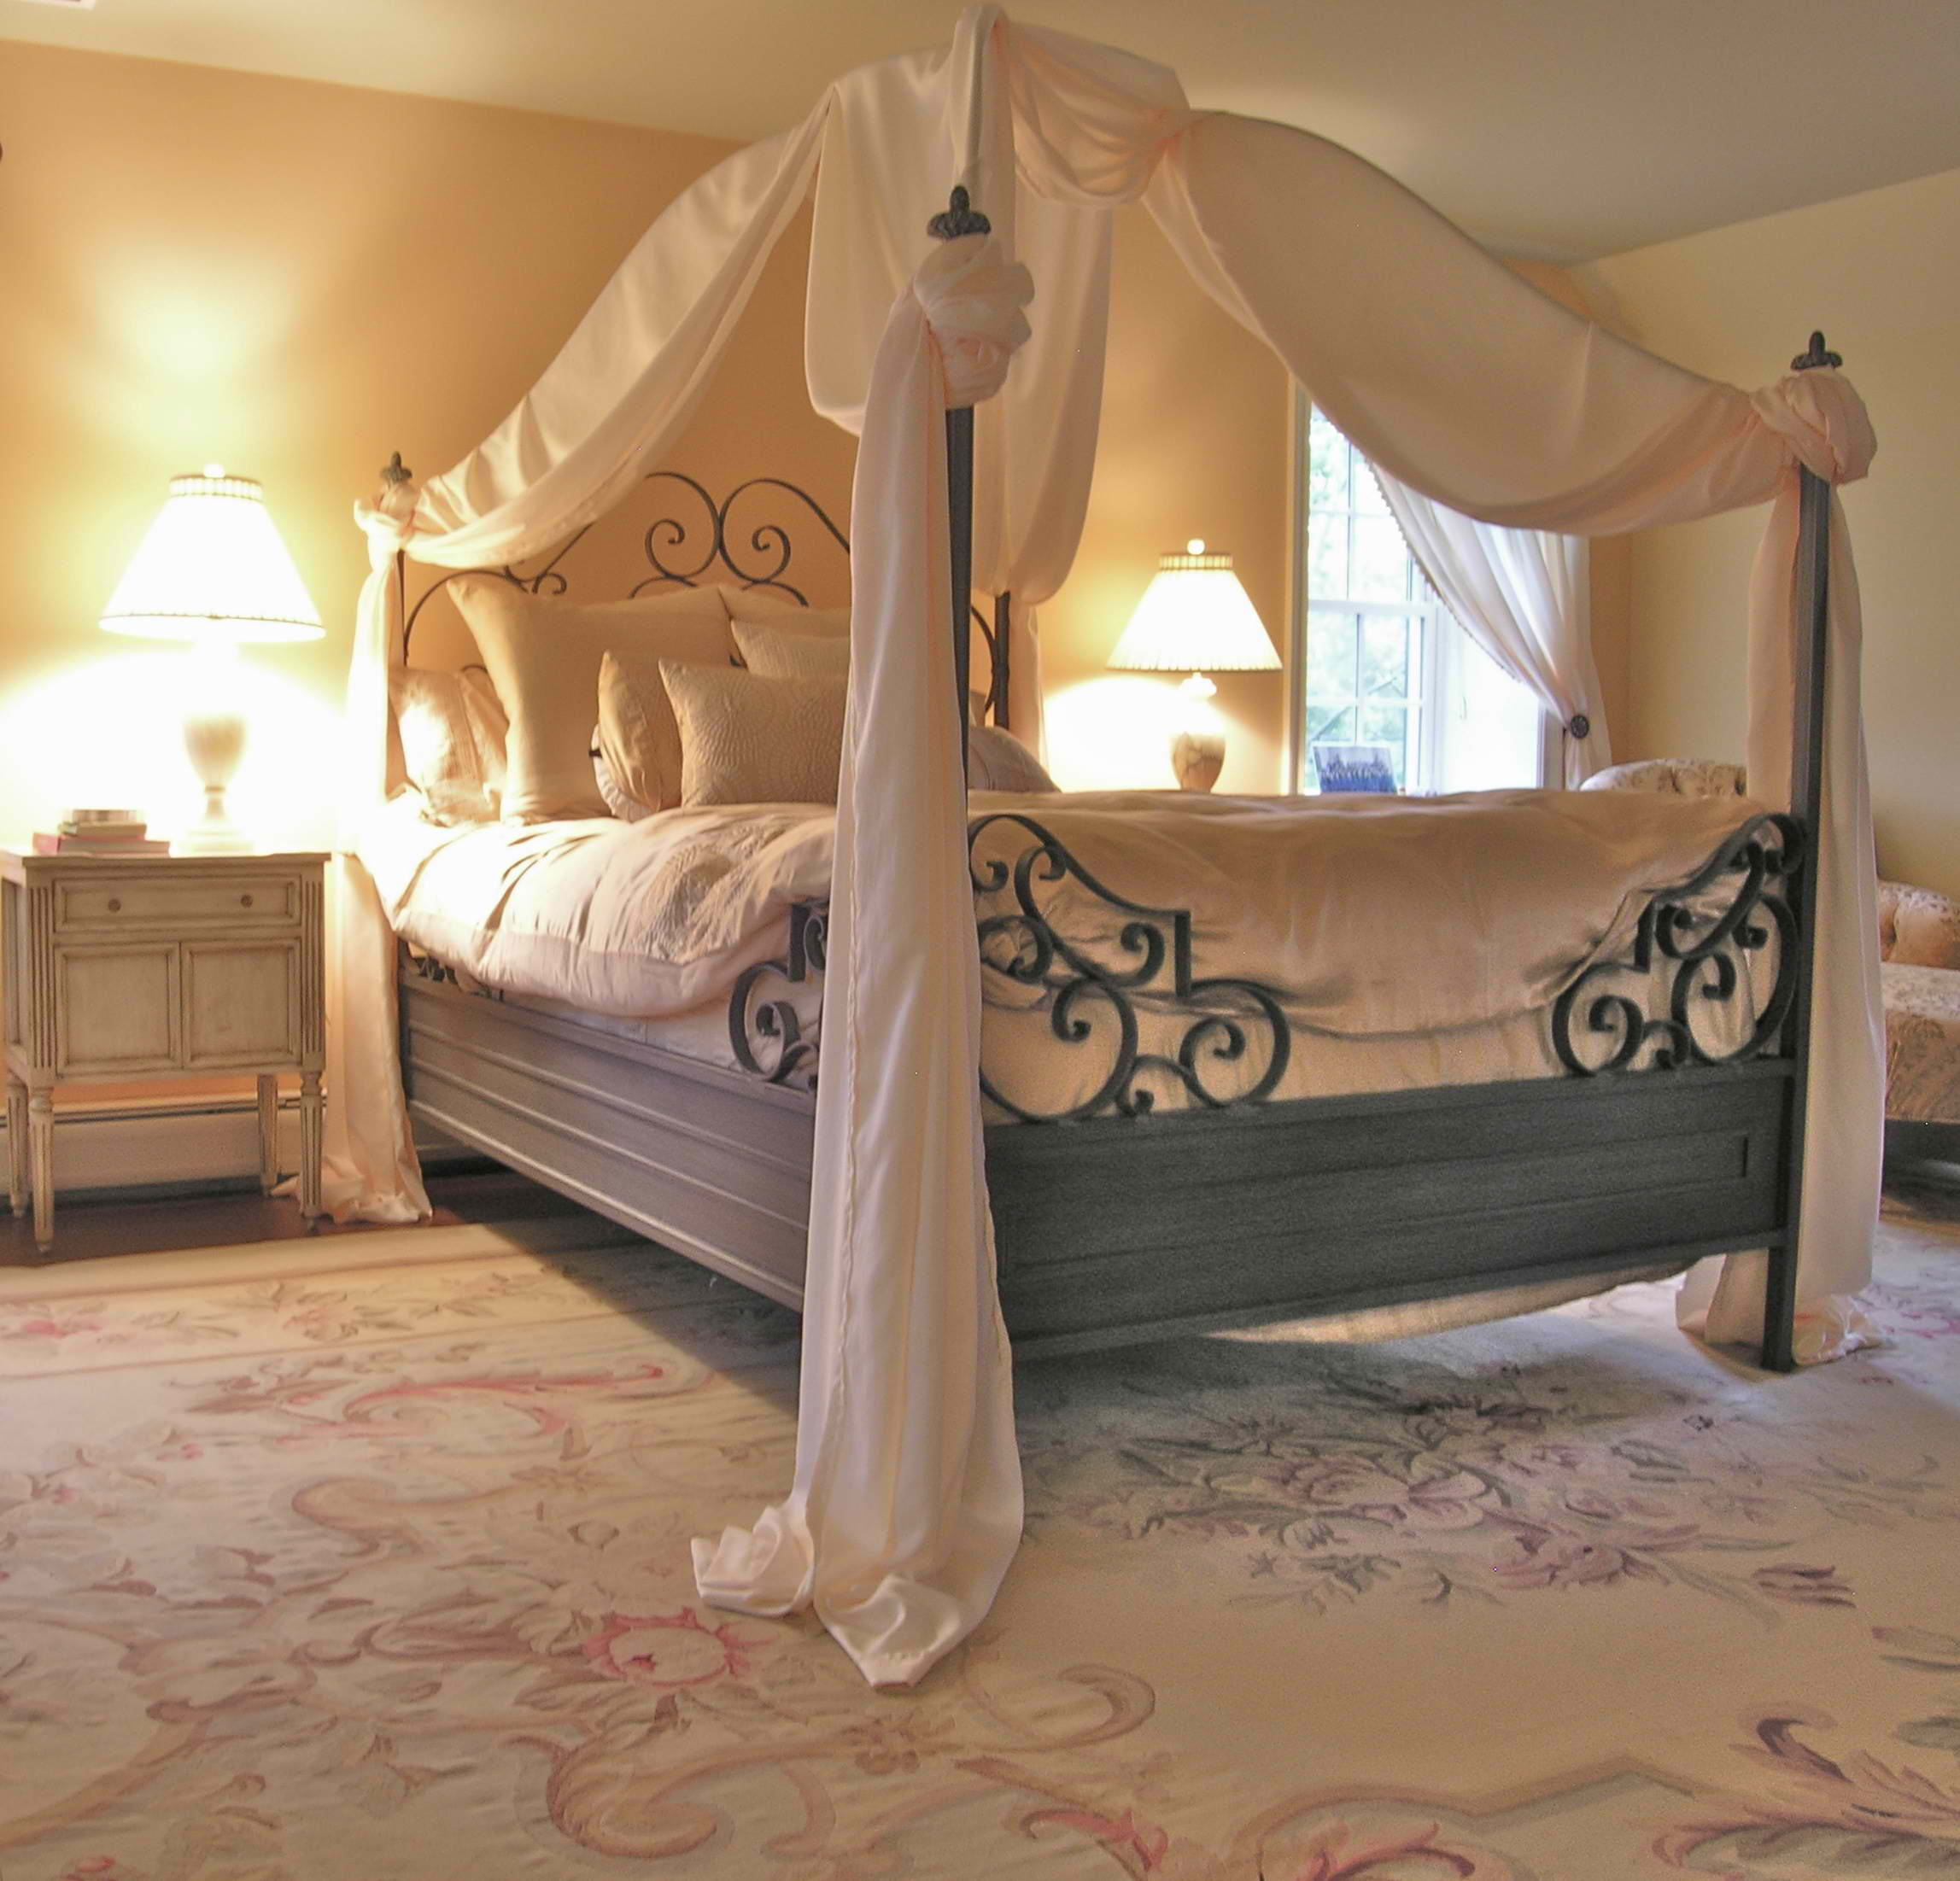 Bedroom European Style Valentines Romantic Bedroom Design With Iron Bed Frames And Pillars And Cool Lighting Design And Decorative Rug Ideas Beautiful Valentines Andrew Batey Sons Limited